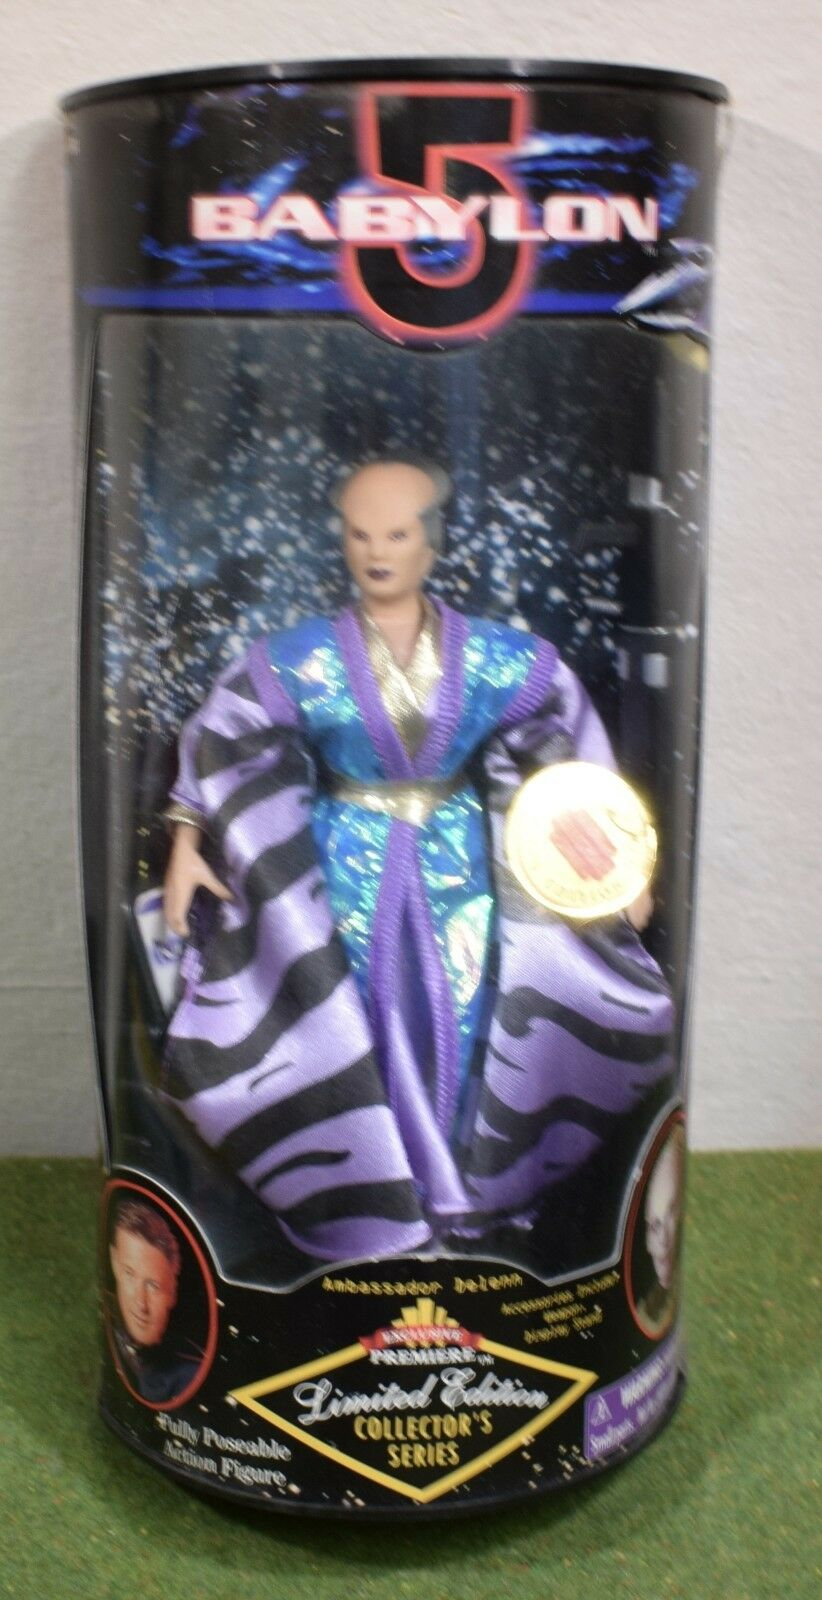 EXCLUSIVE PREMIERE DIAMOND COMIC BABYLON 5 AMBASSADOR DELENN ACTION FIGURE